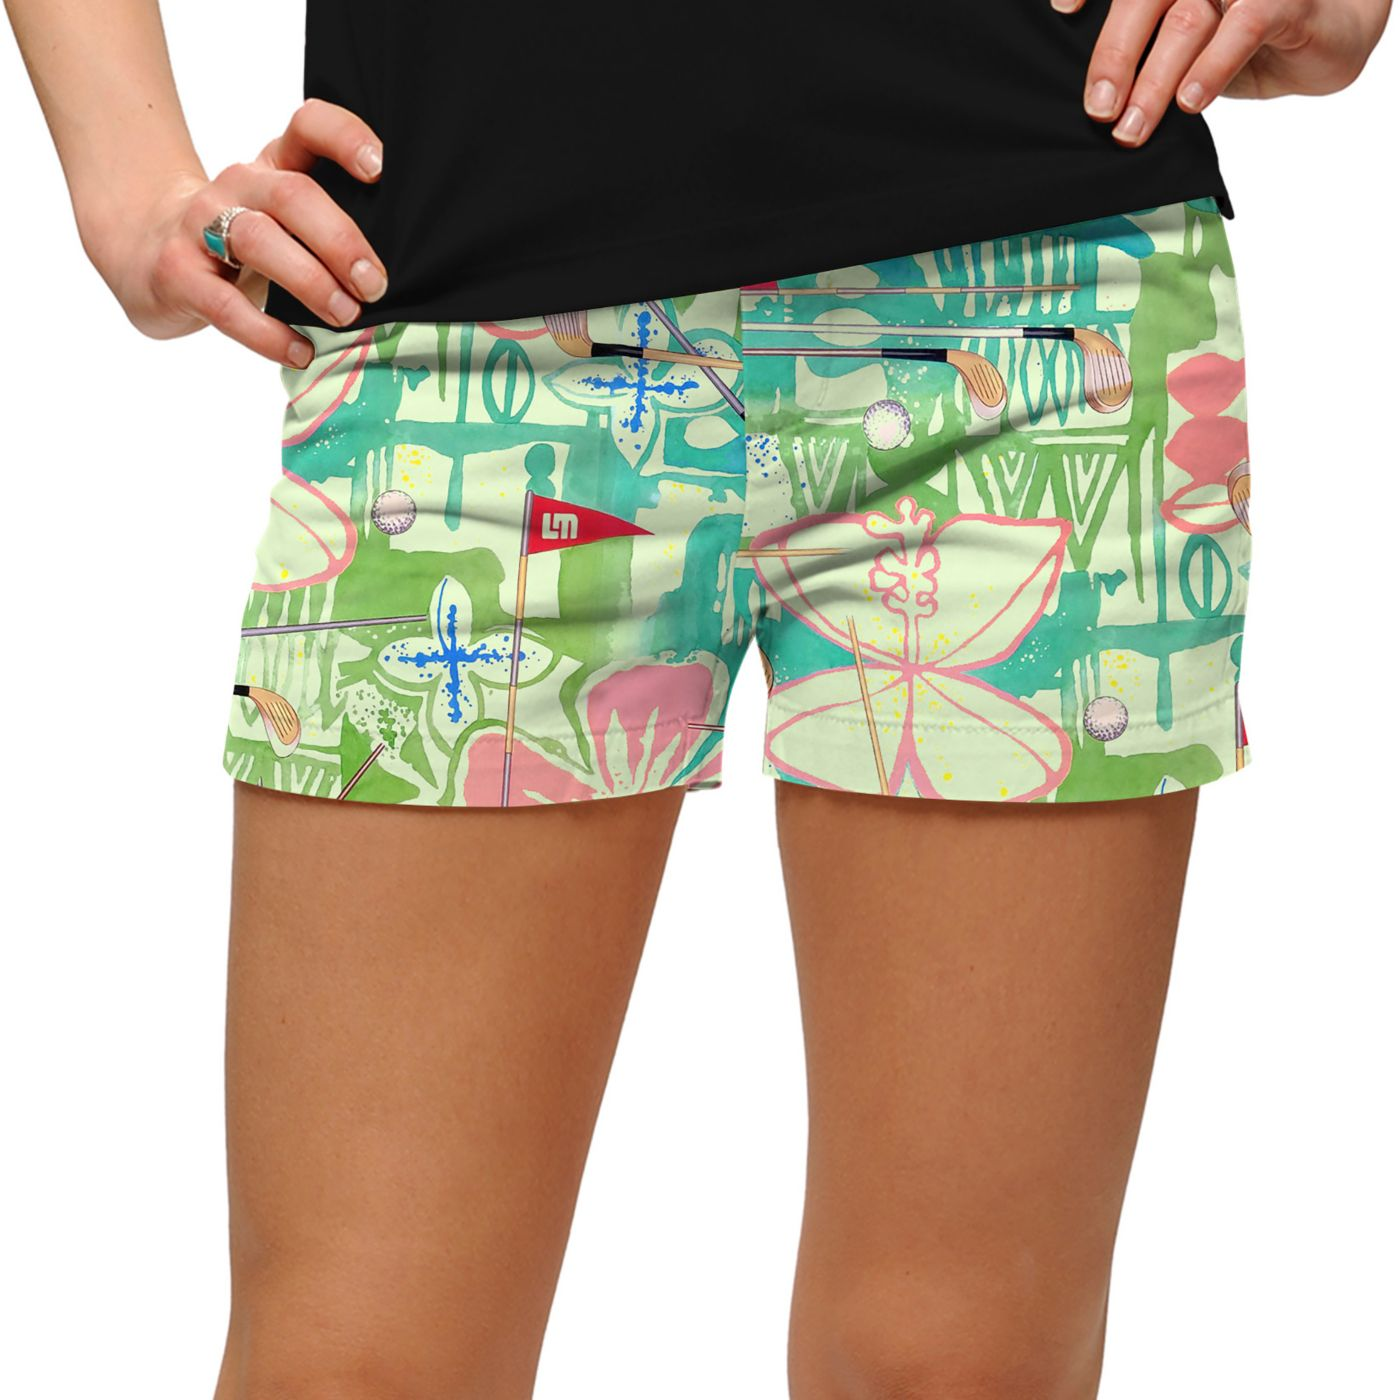 Loudmouth Women's Baffing Spoon StretchTech Golf Shorts